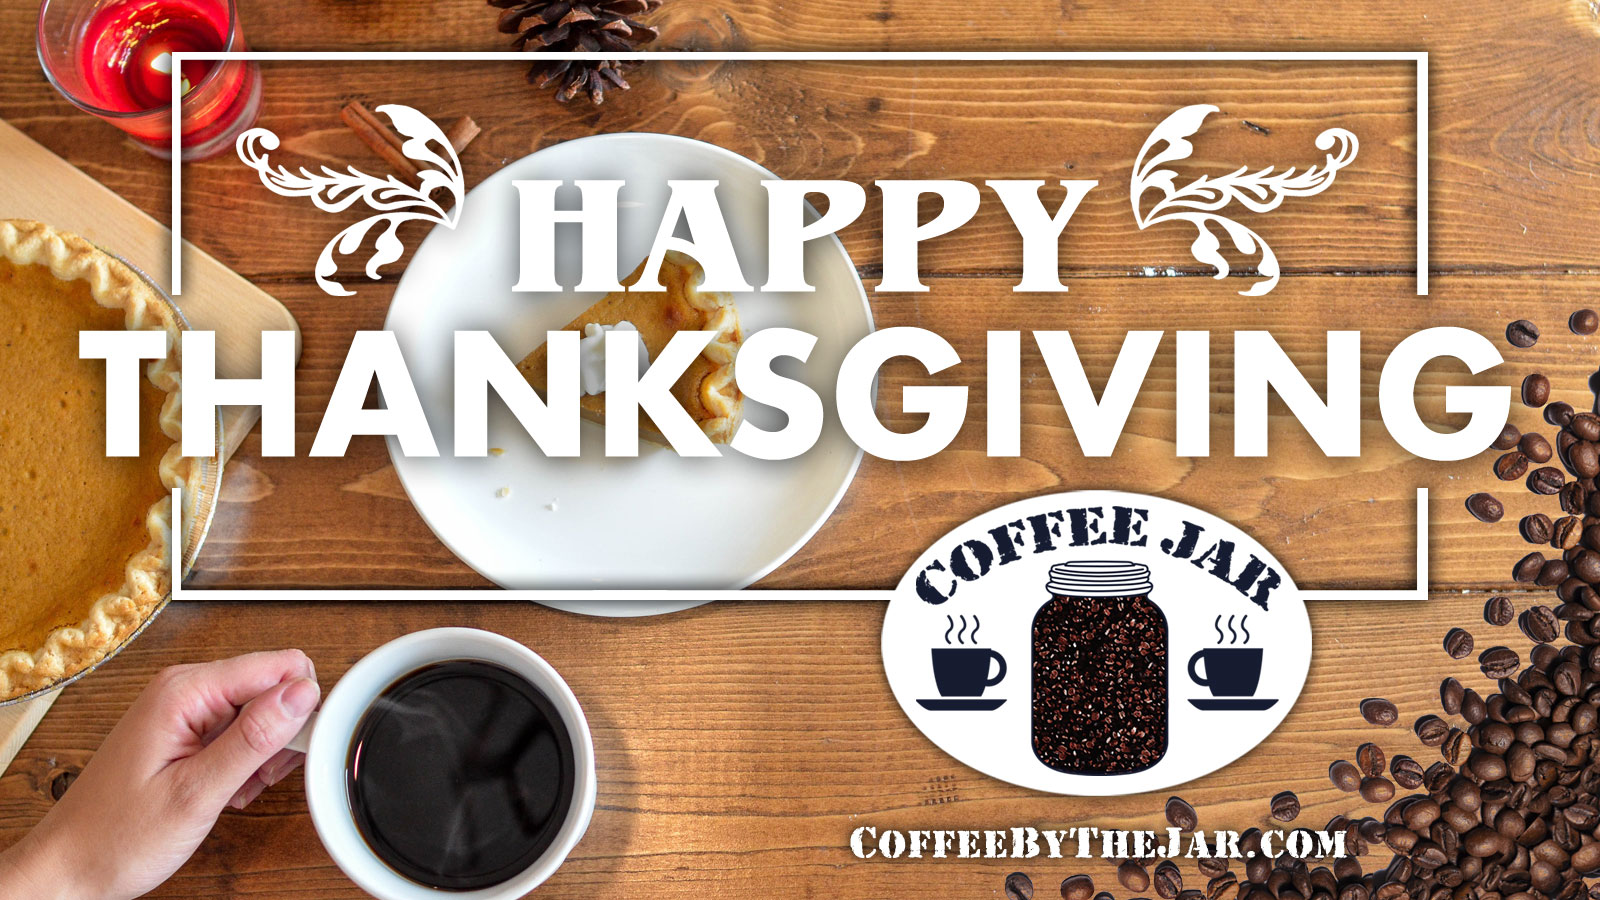 Coffee-Jar-Happy-Thanksgiving-wallpaper01-1600x900